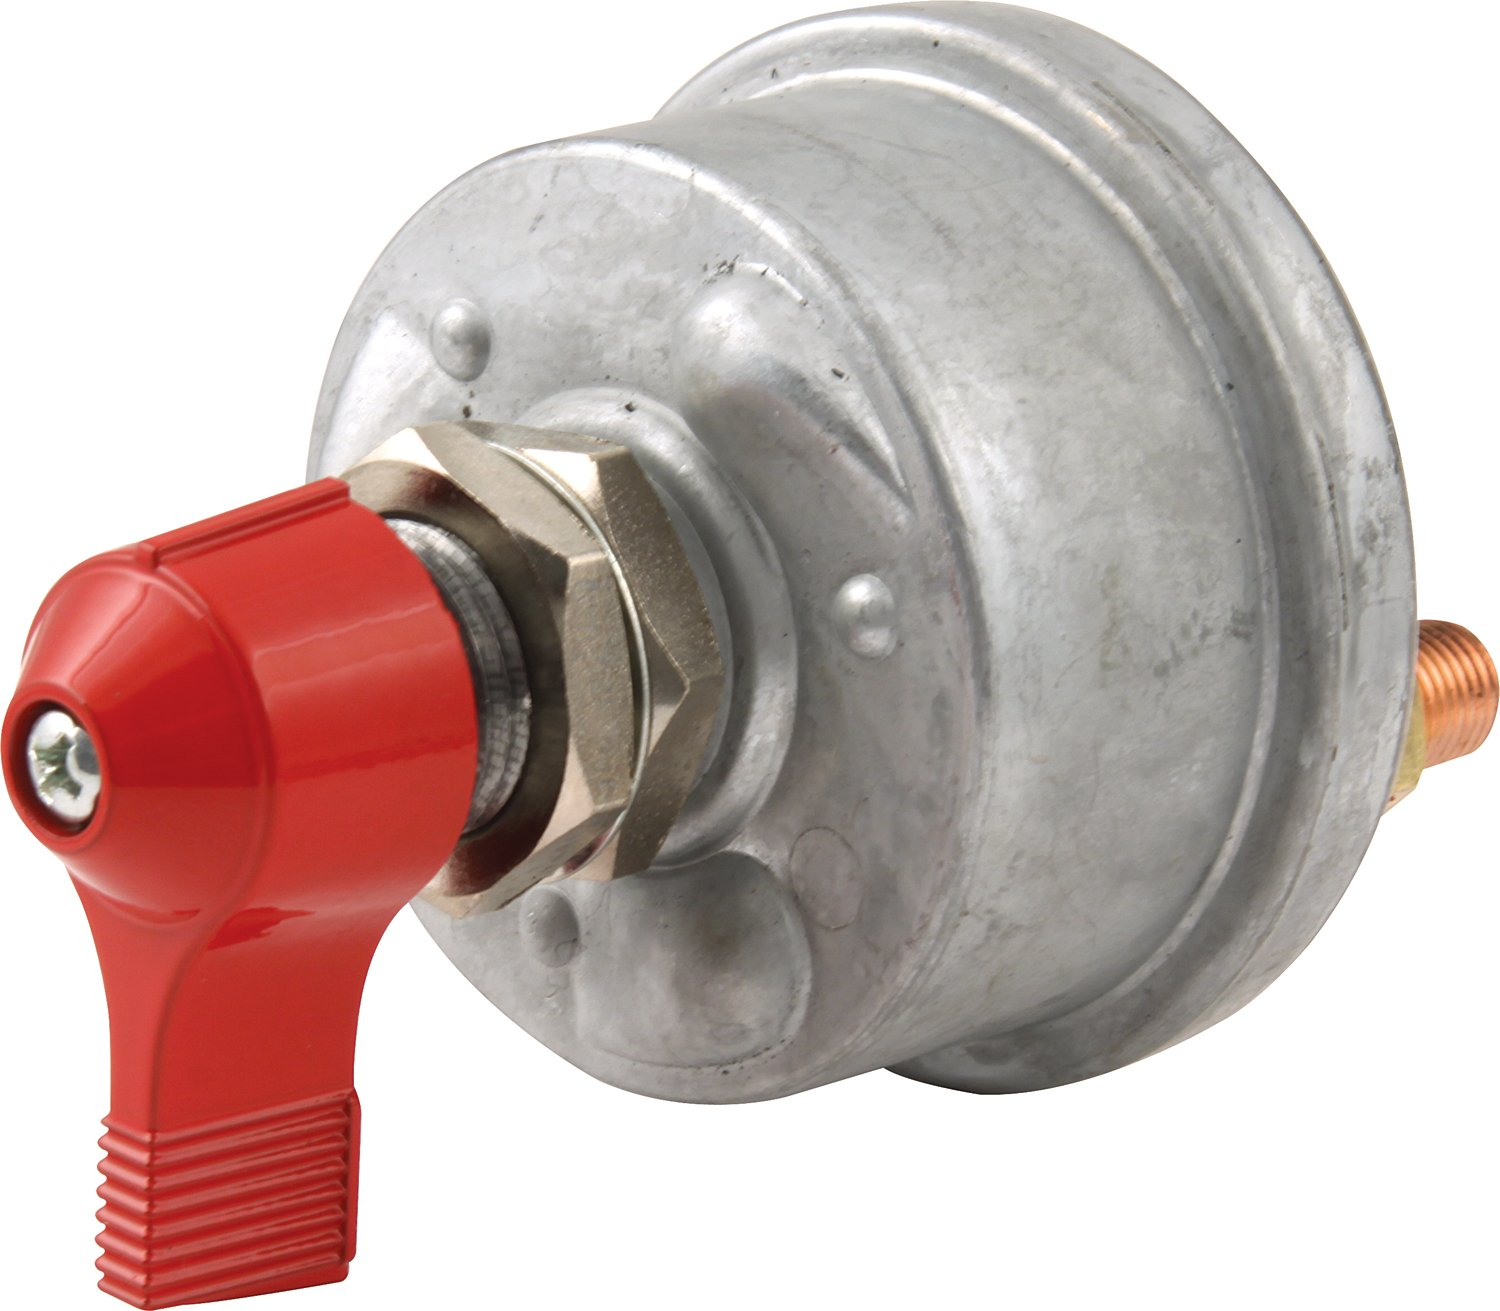 QuickCar Racing Products 55-009 Red 2-1//2 High x 2-1//2 Handle Wide Battery Master Disconnect Switch with Mounting Panel